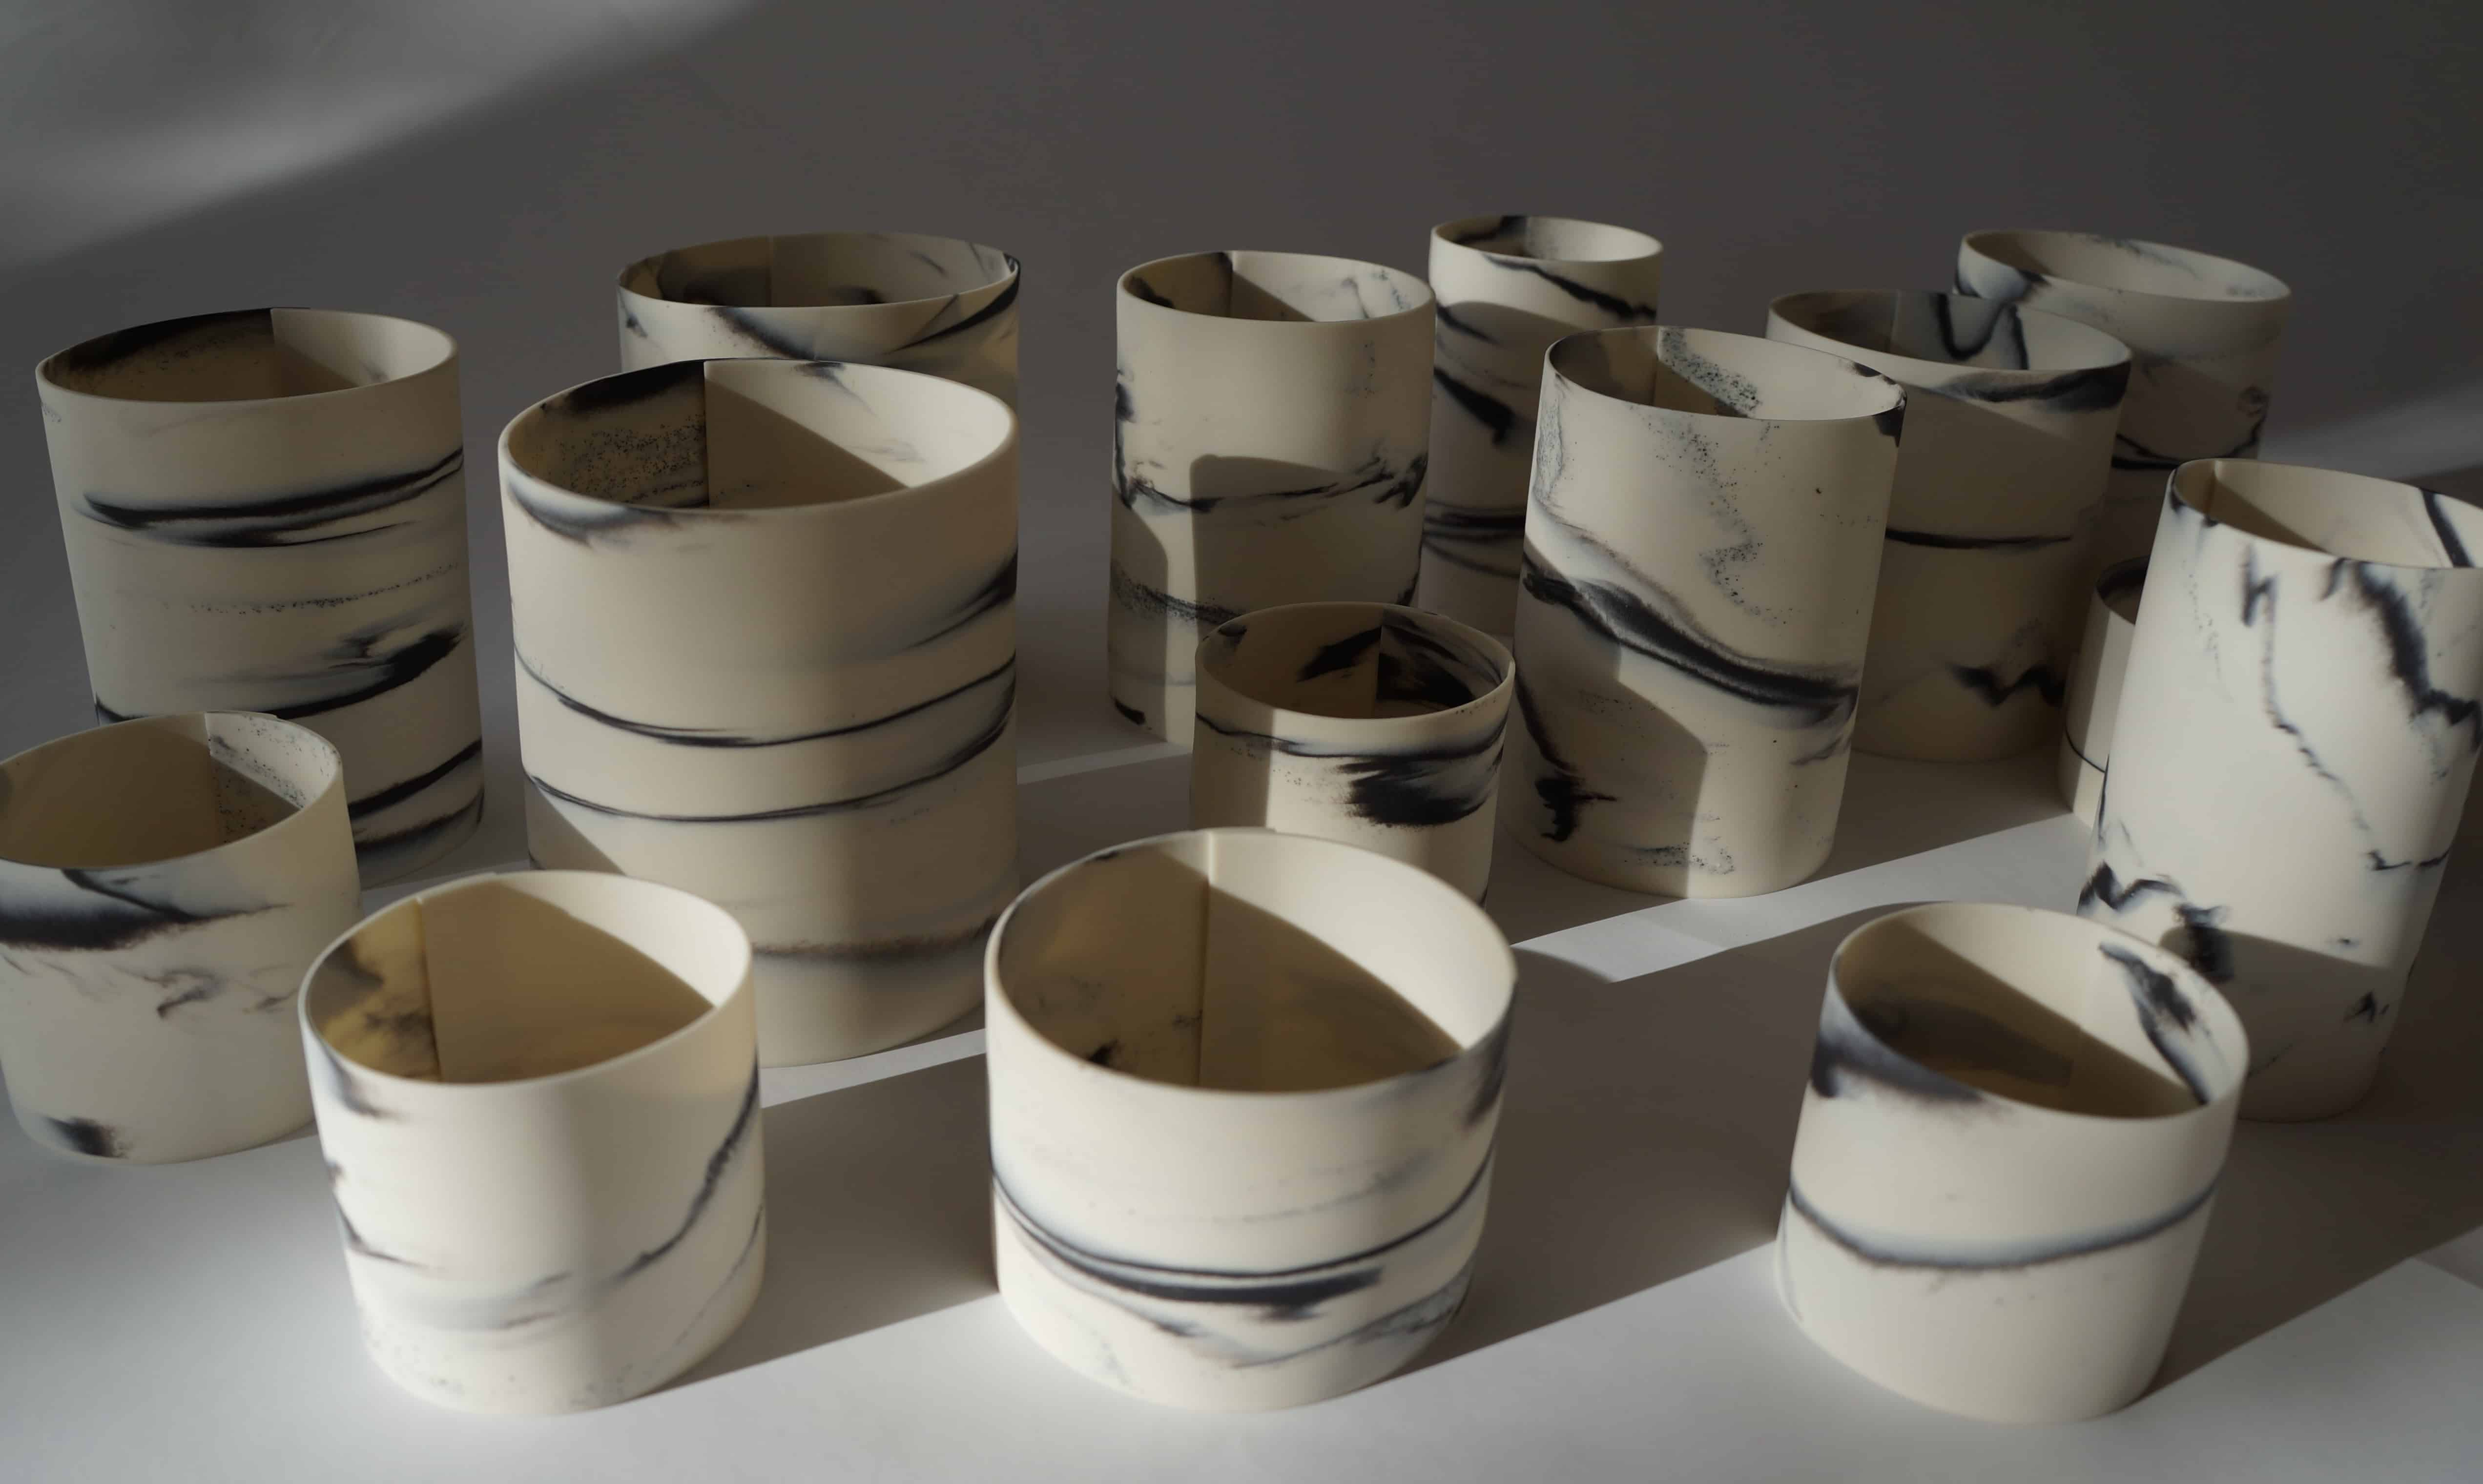 South Wales Potters